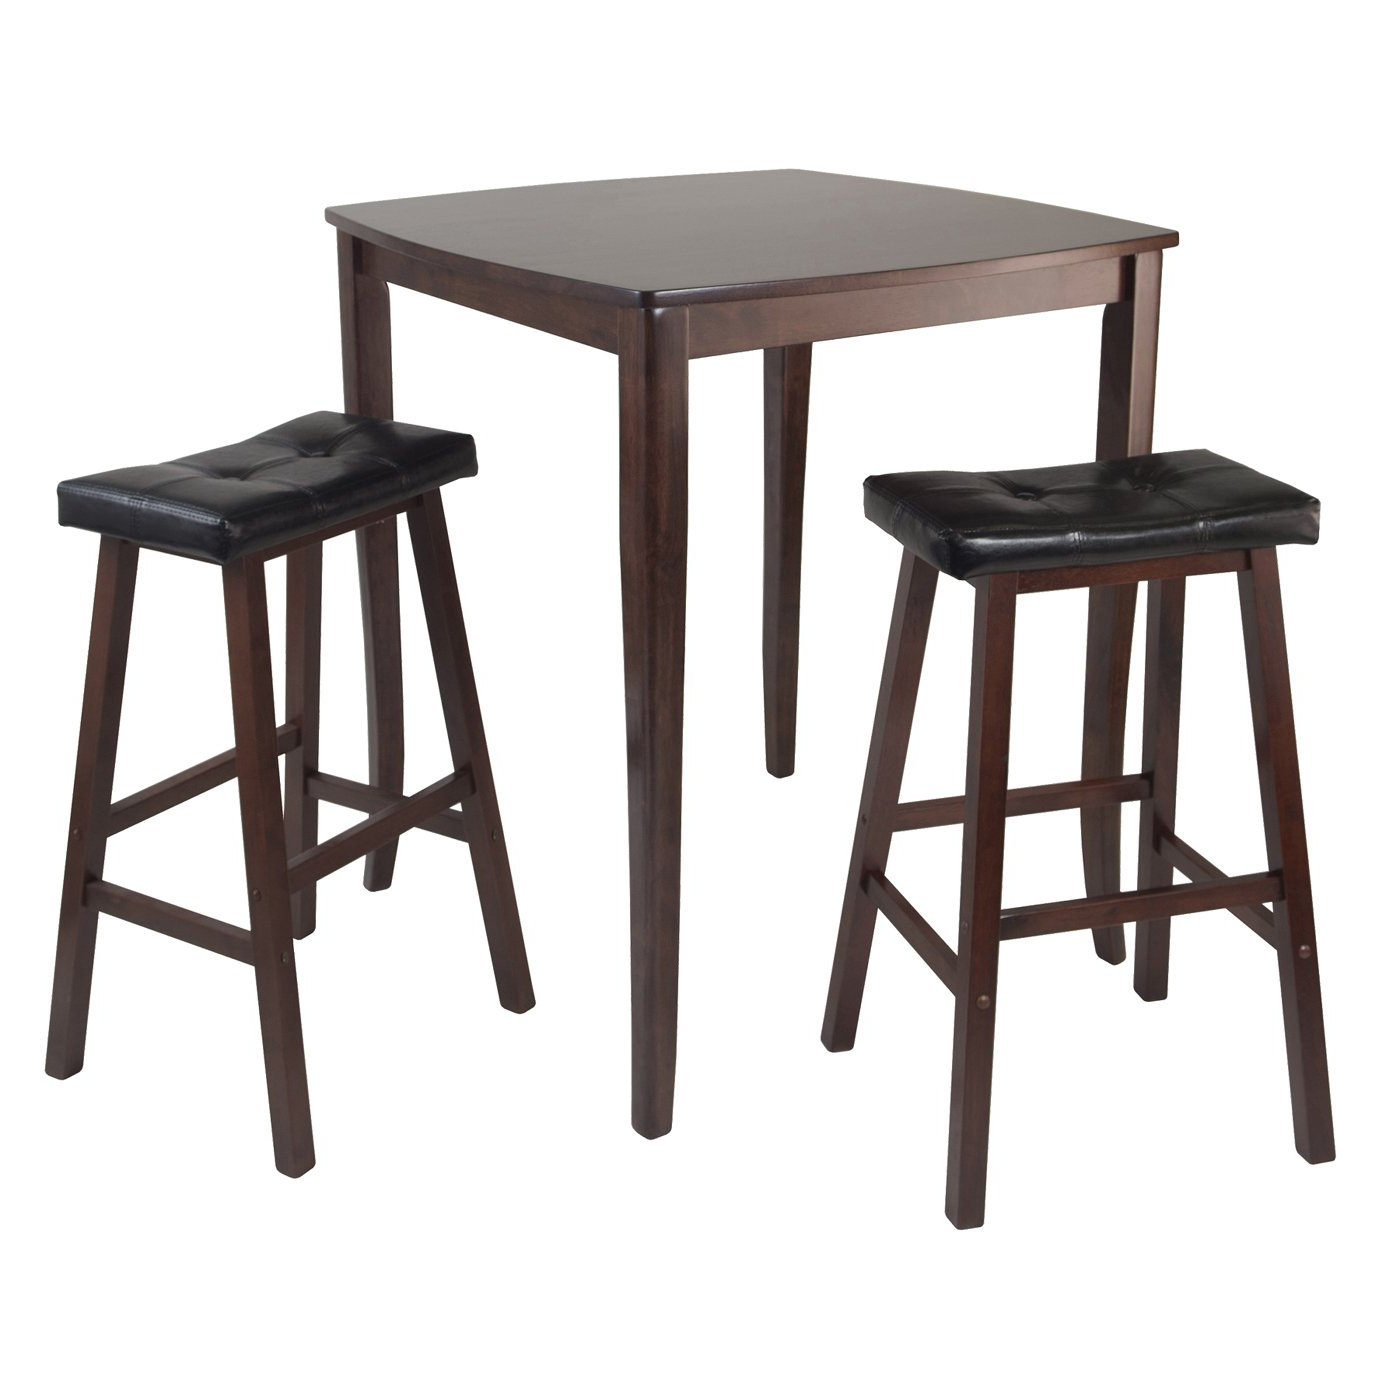 Winsome Wood 94360 Inglewood 3 Piece High Pub Table Dining Set Throughout Widely Used Winsome 3 Piece Counter Height Dining Sets (View 18 of 20)